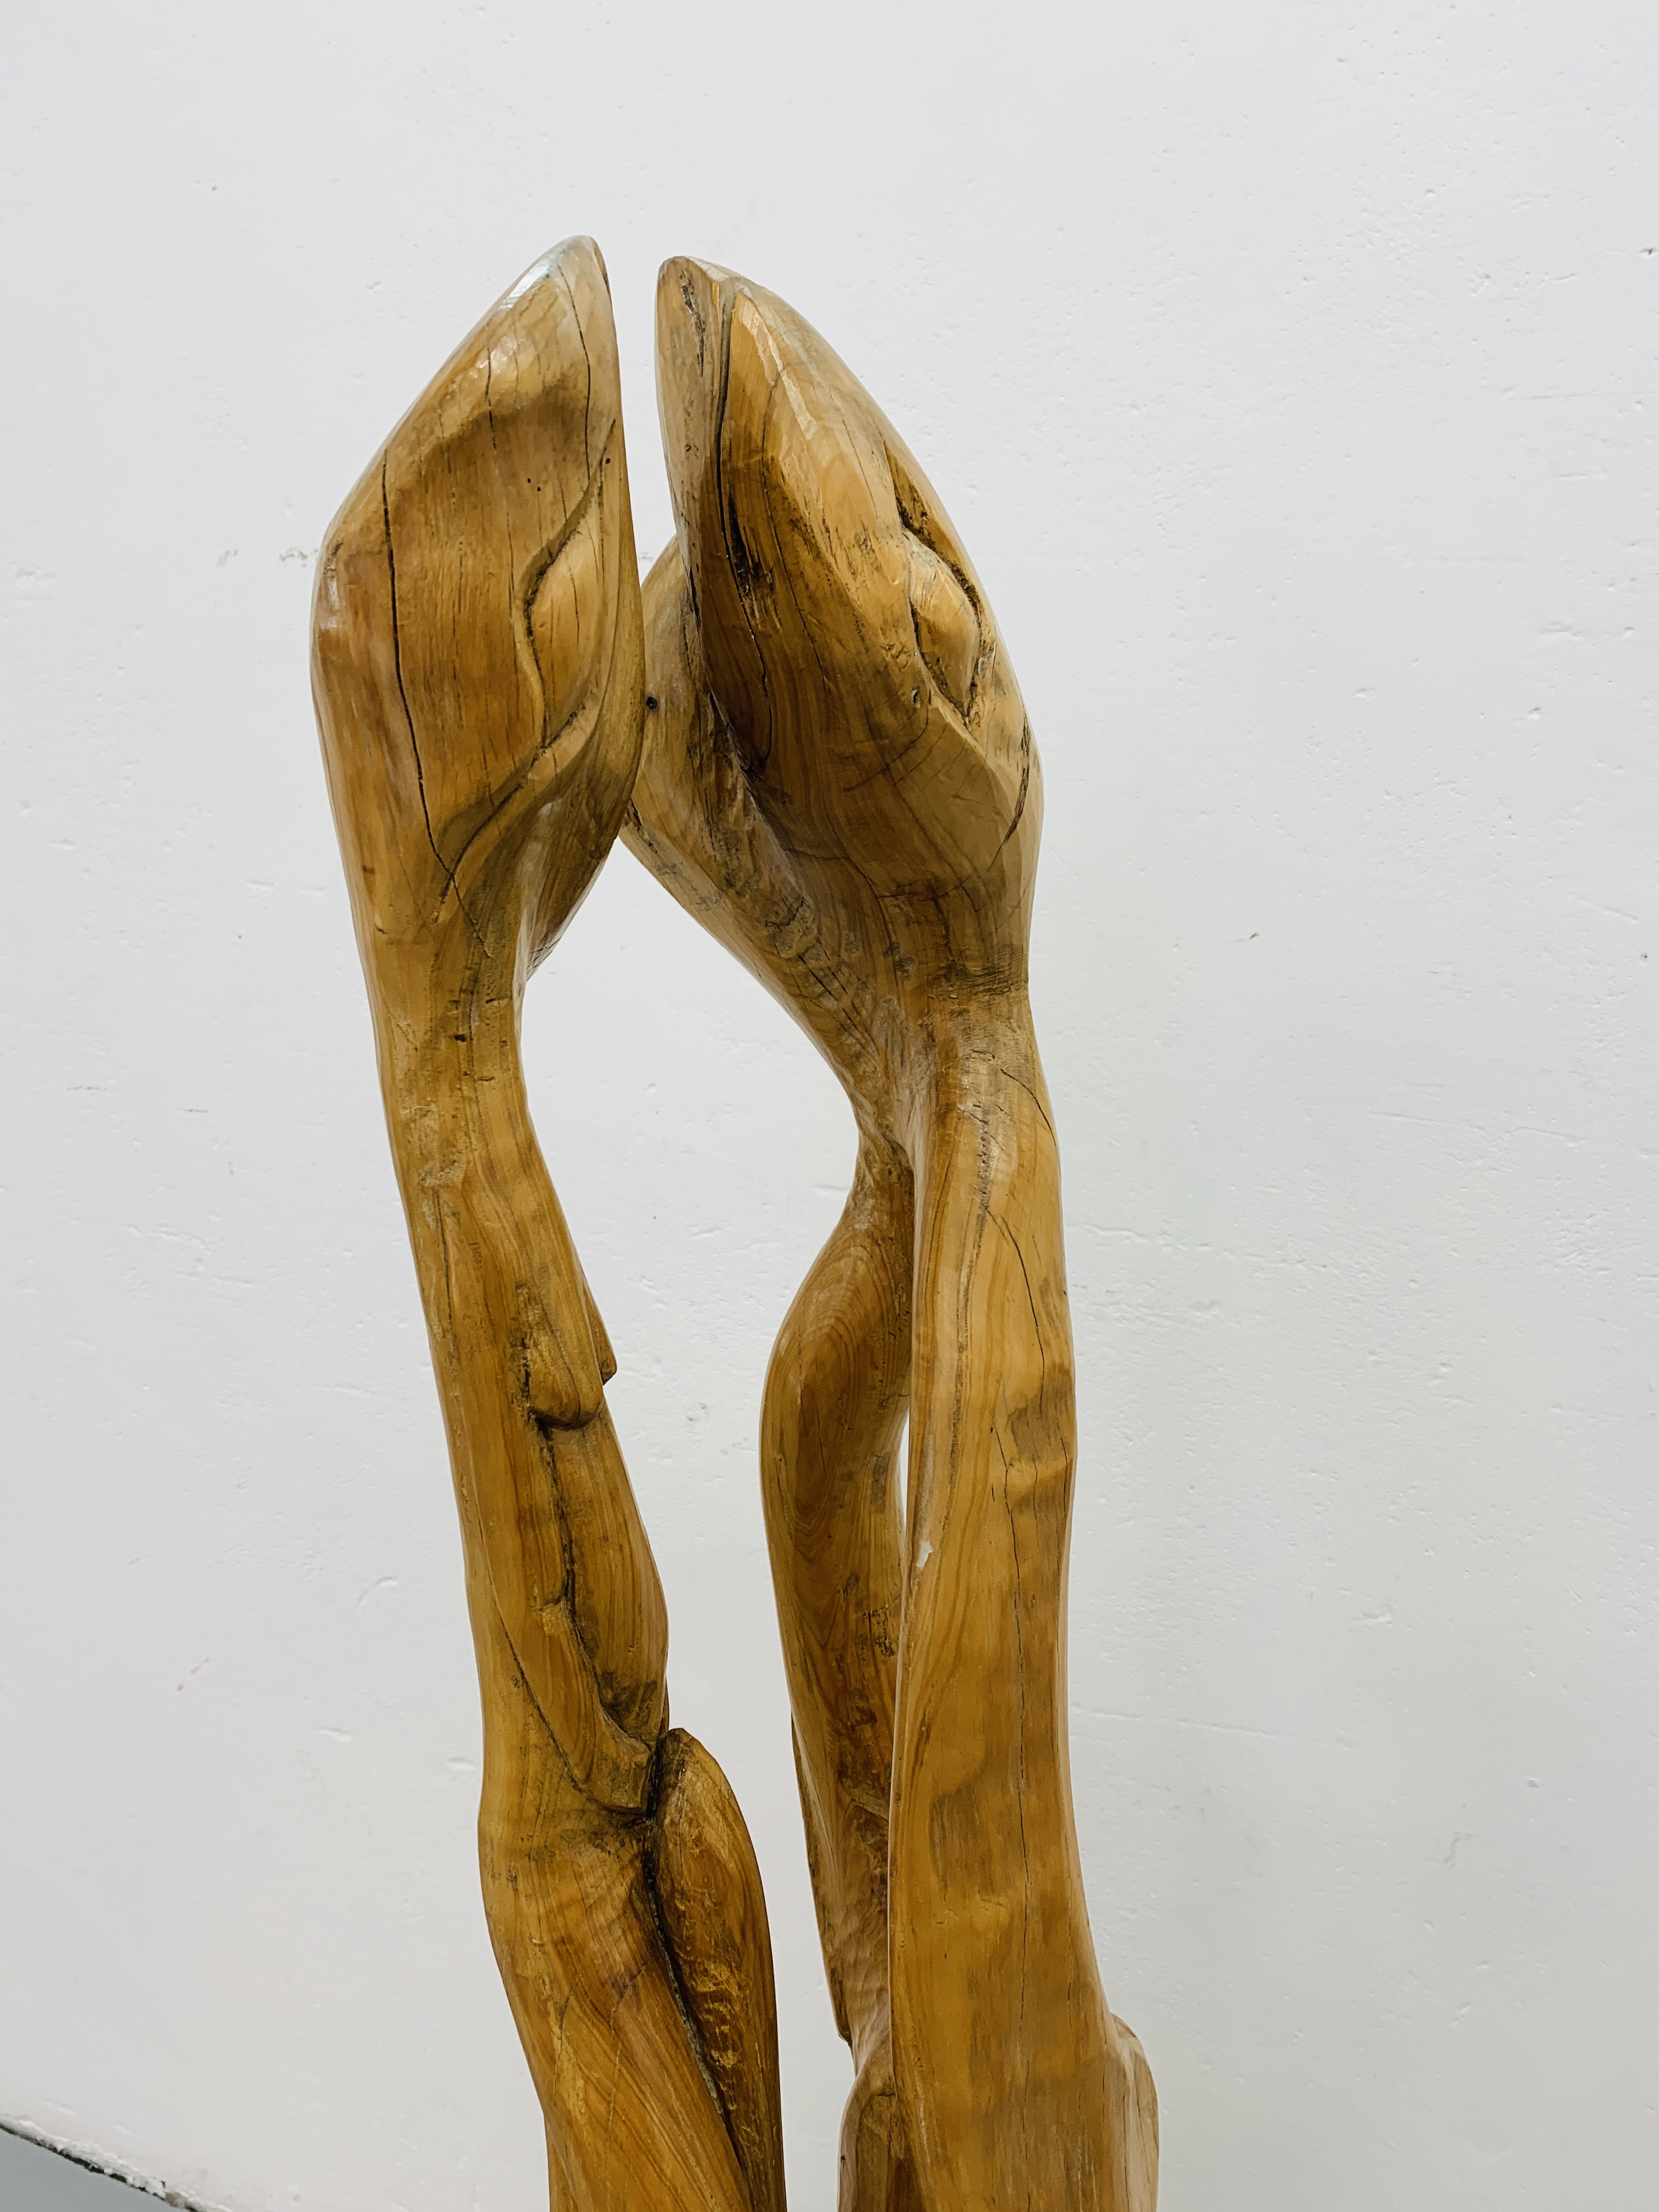 """A HARDWOOD ABSTRACT SCULPTURE """"FAMILY"""" BY P.T. - Image 3 of 9"""